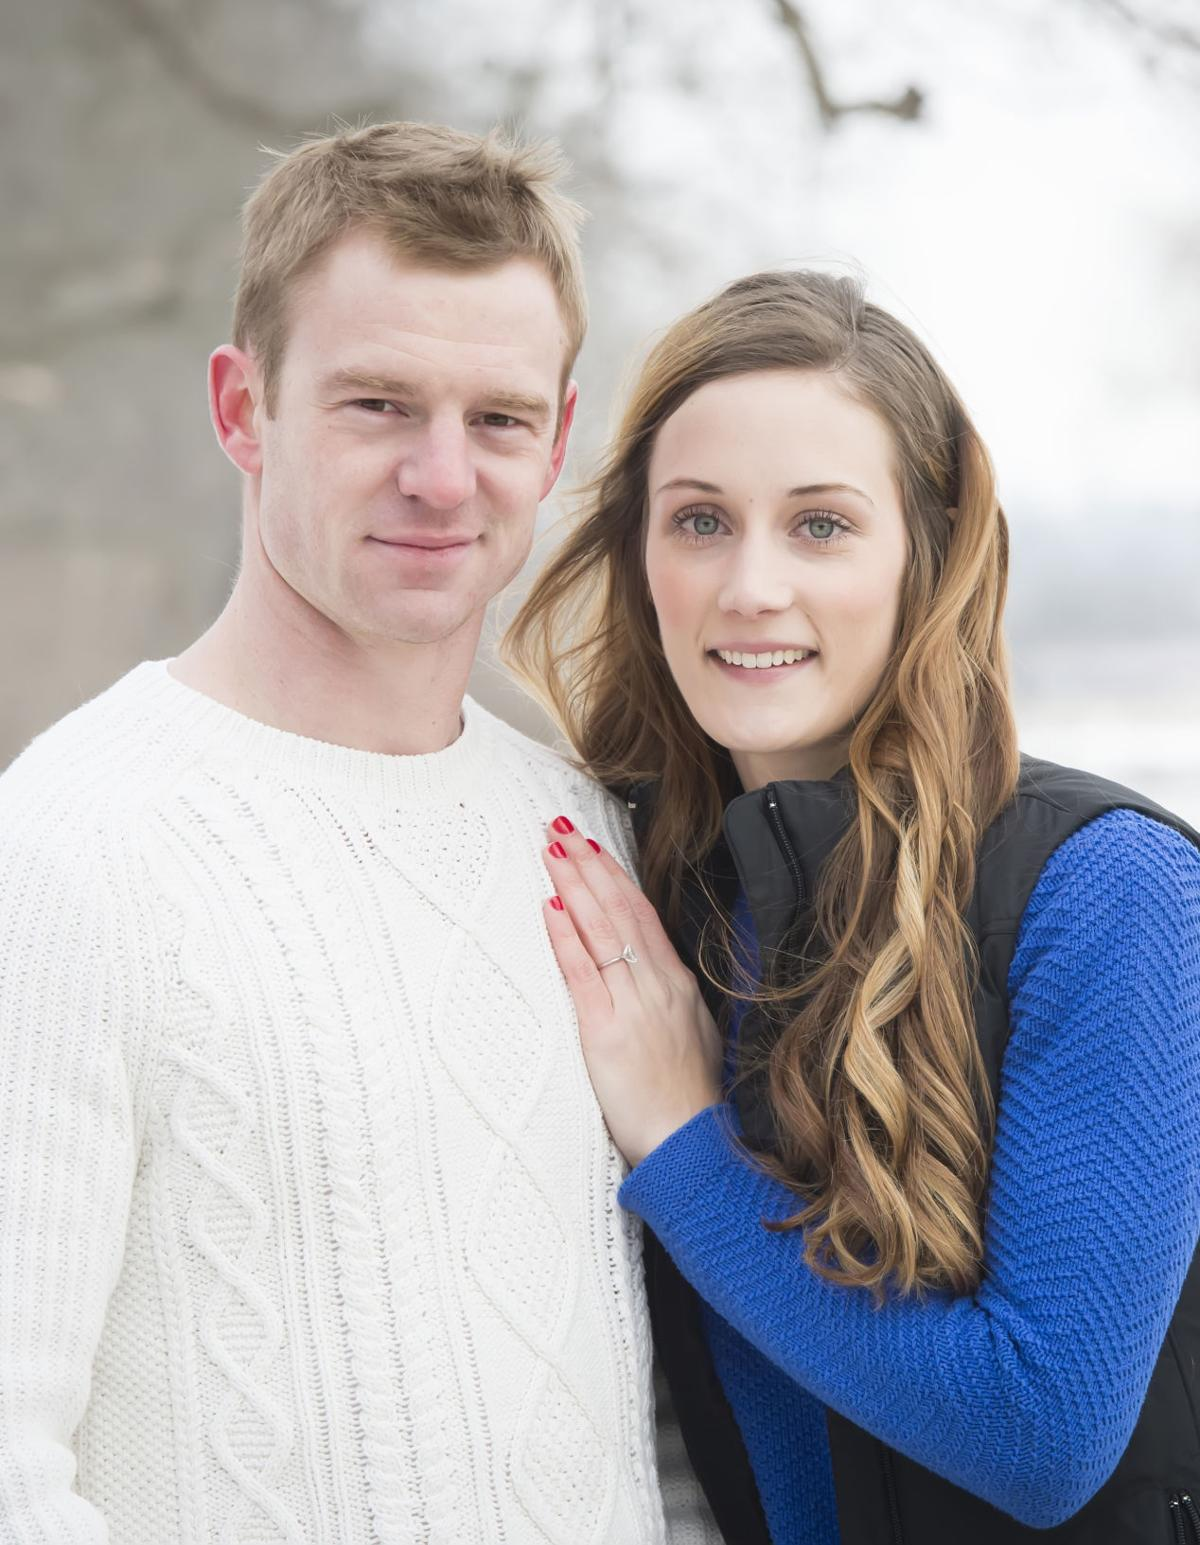 Stephen Smith and Jacey Greer